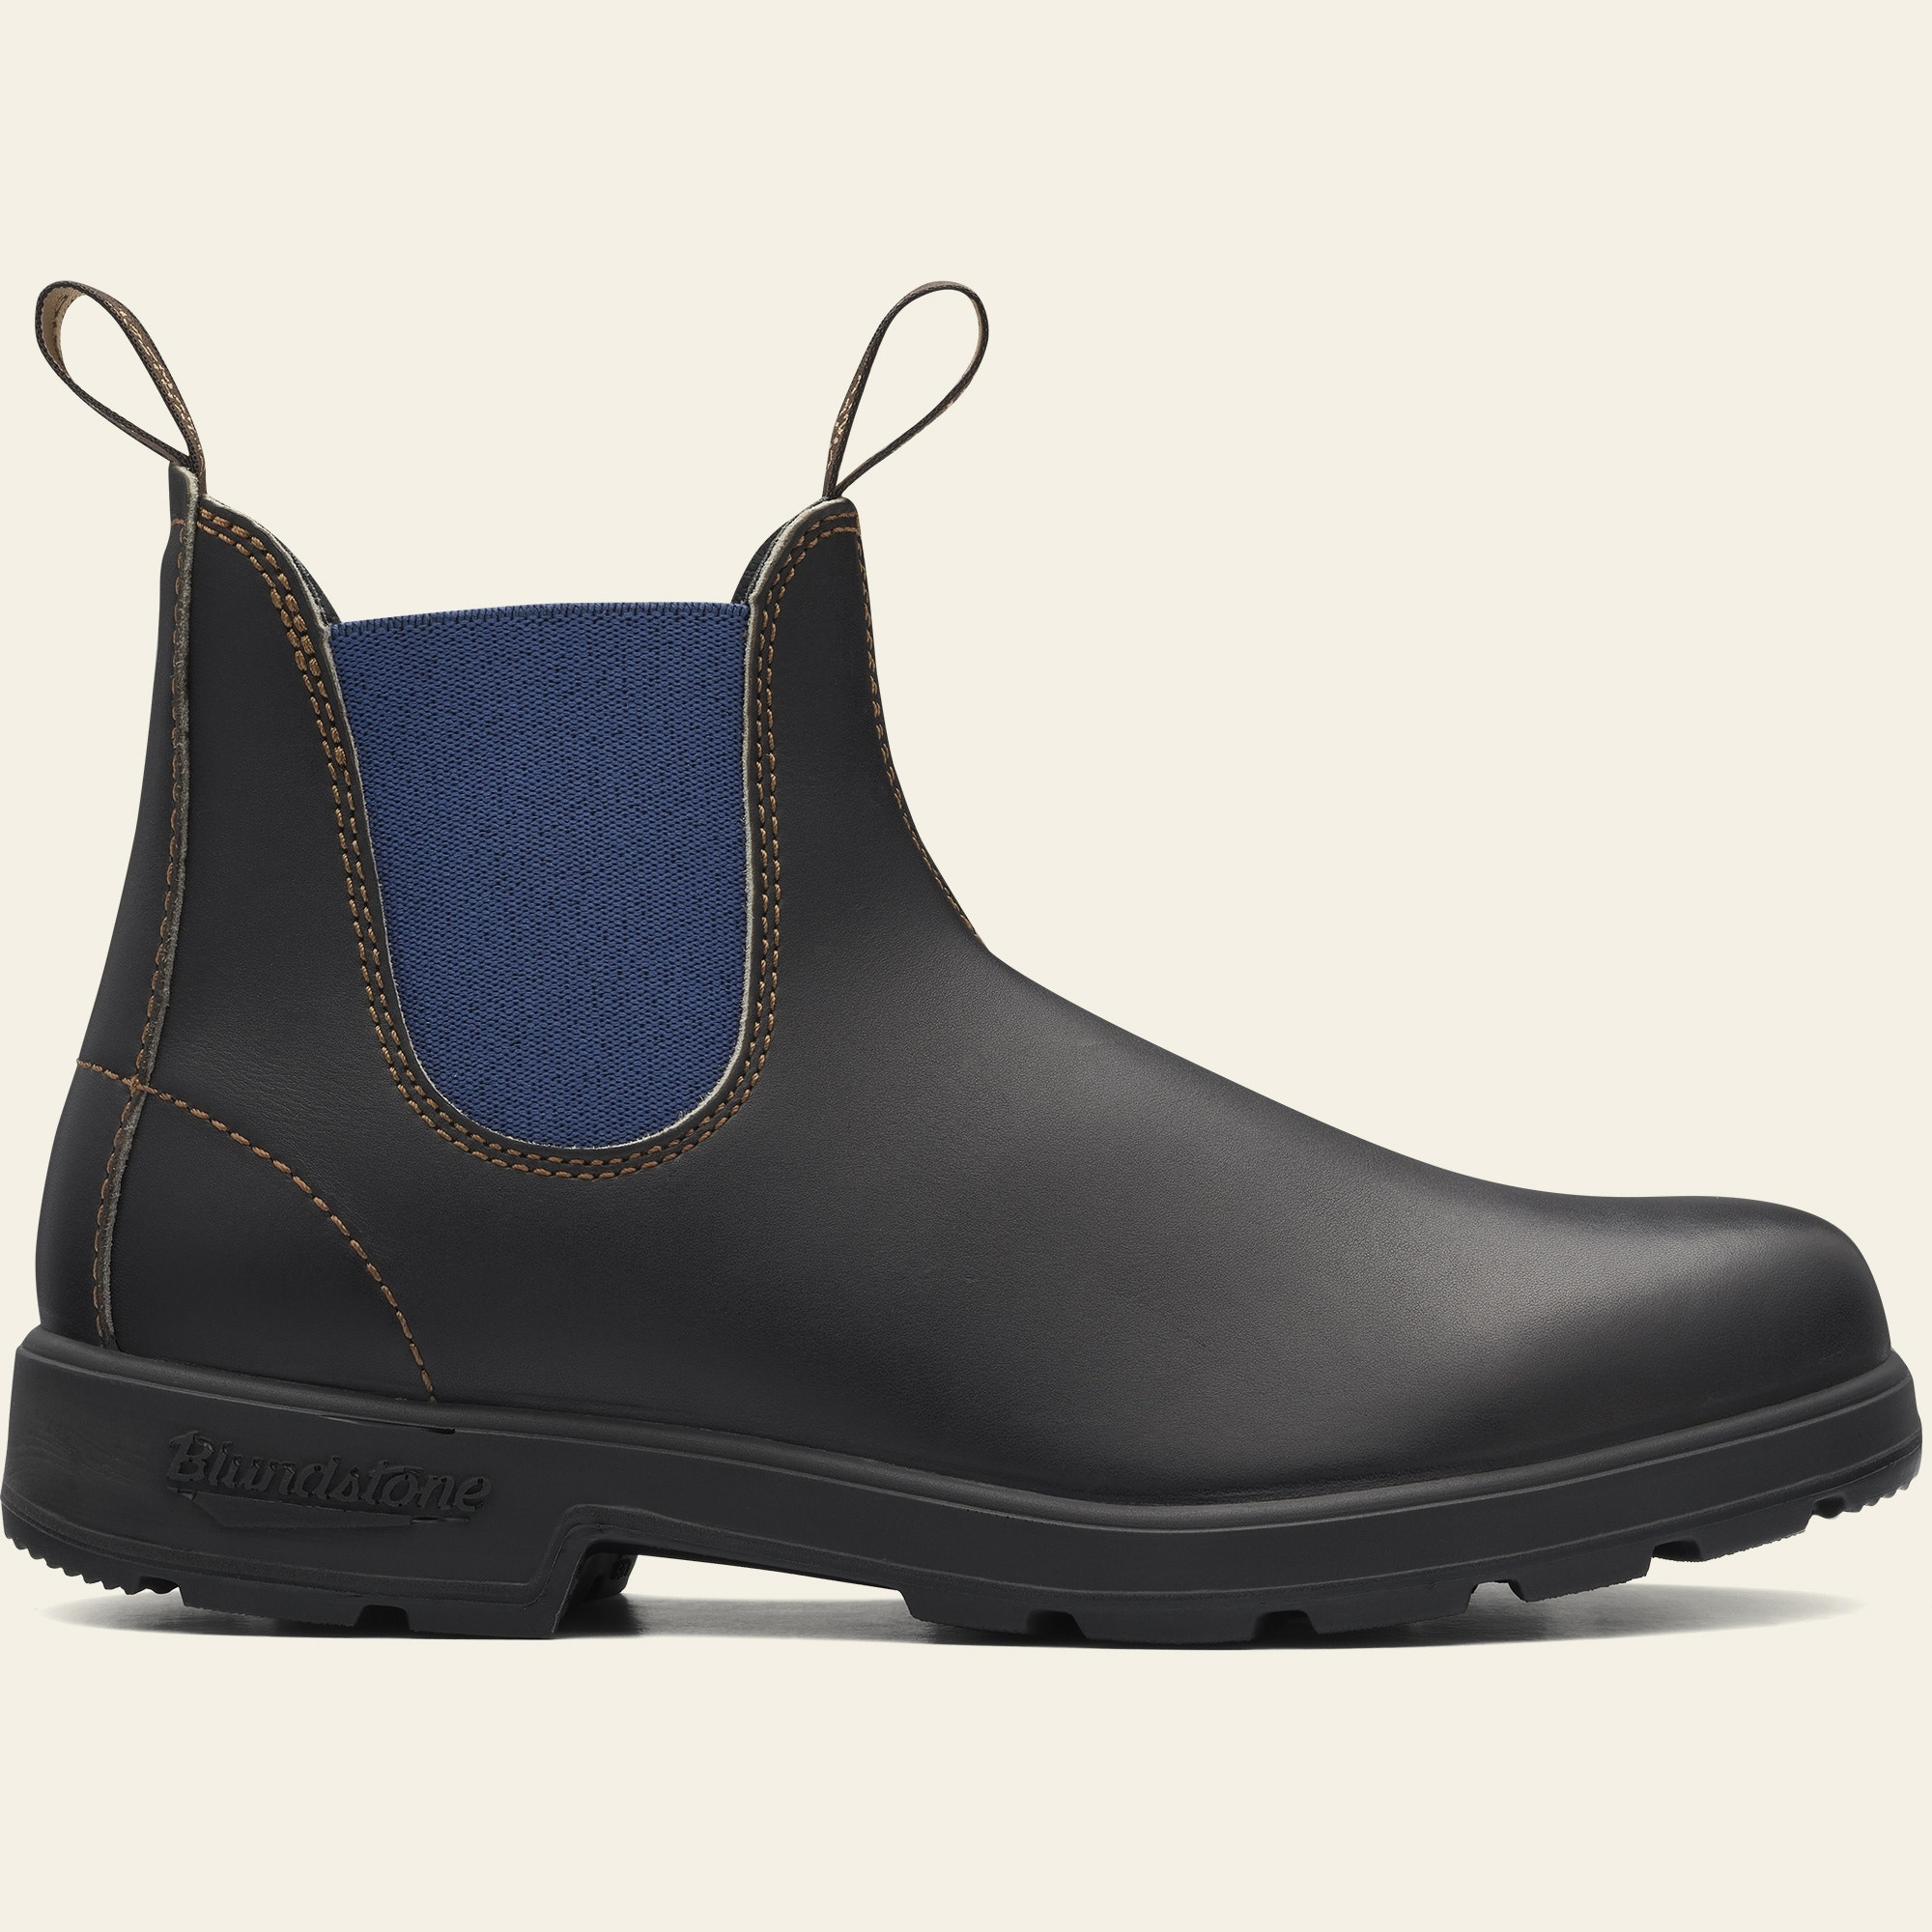 BOTAS BLUNDSTONE 578 STOUT BROWN BLUE